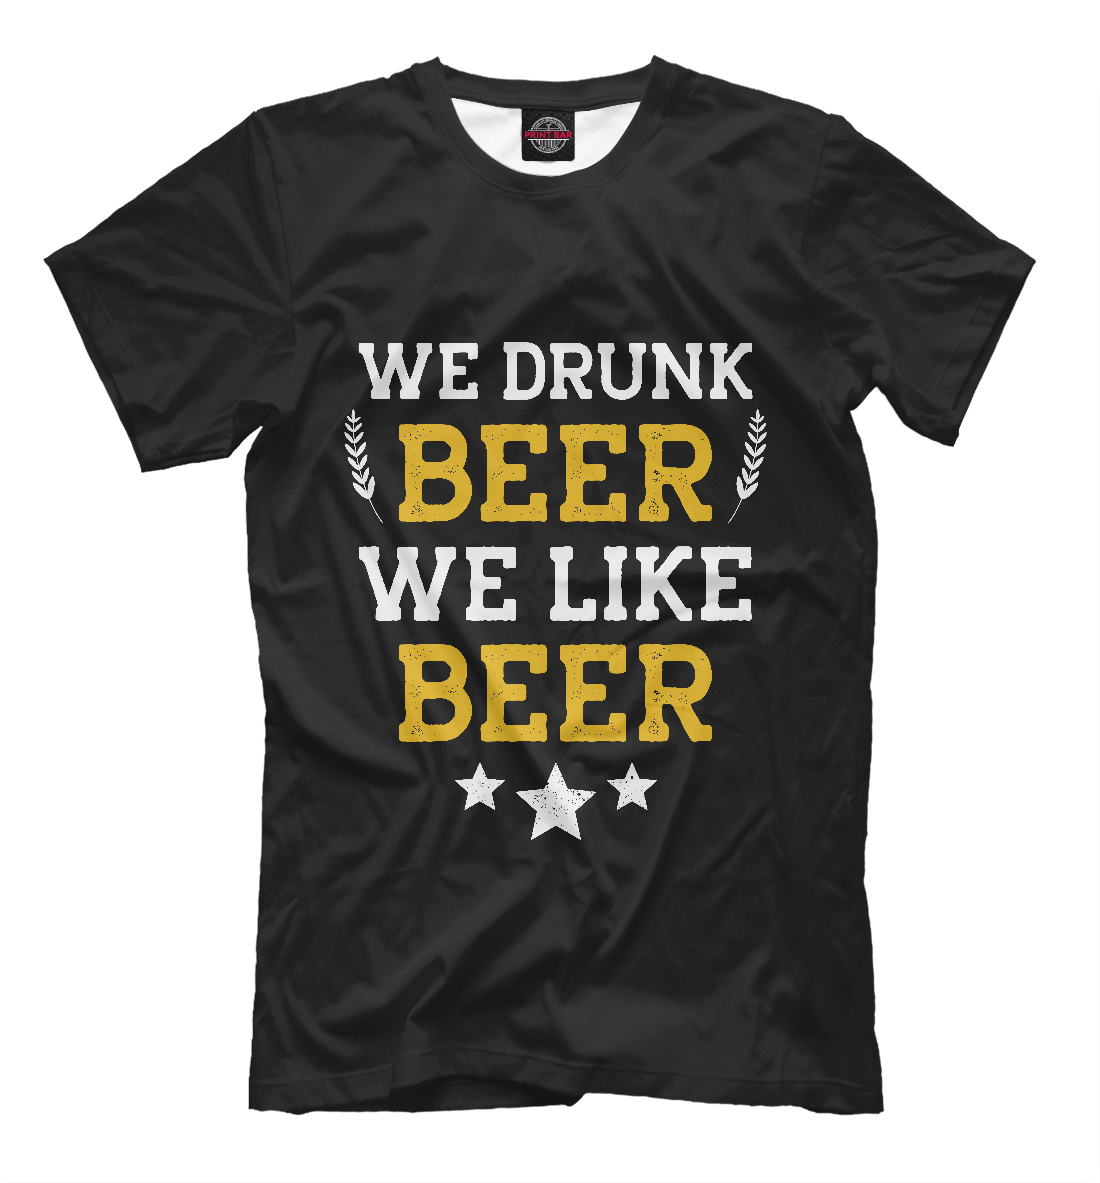 We drunk beer we like beer